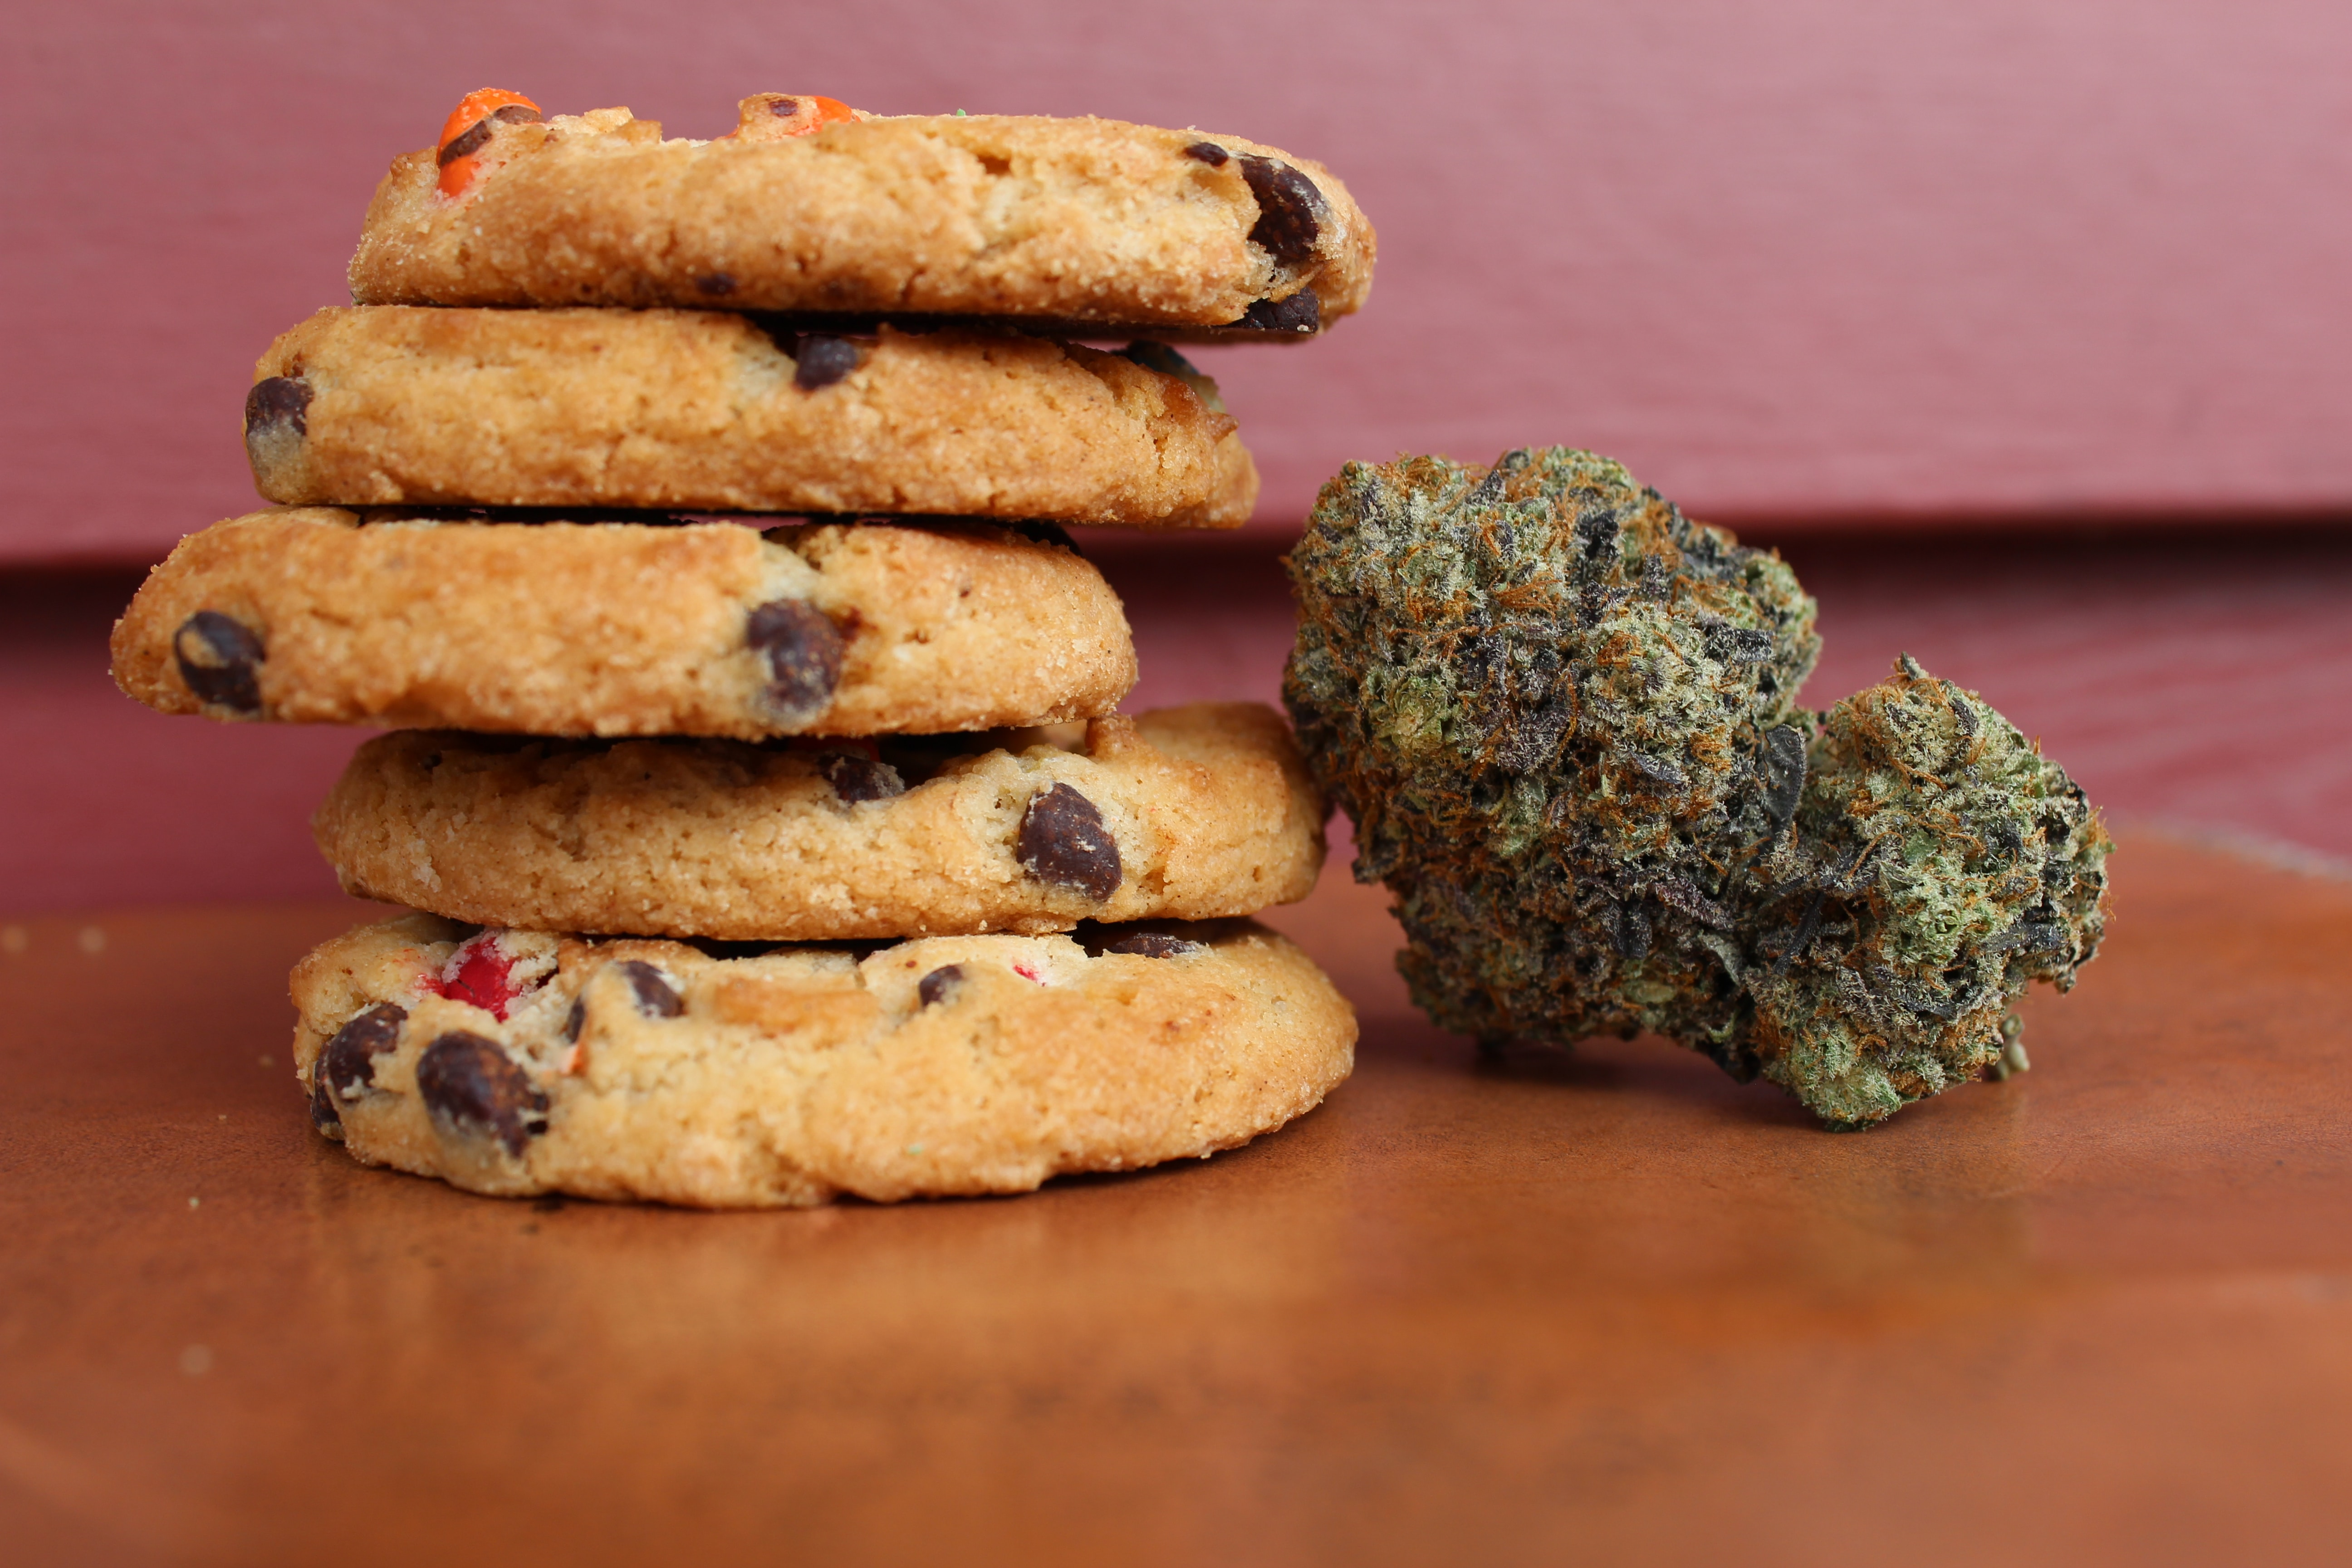 edible cookies and marijuana bud